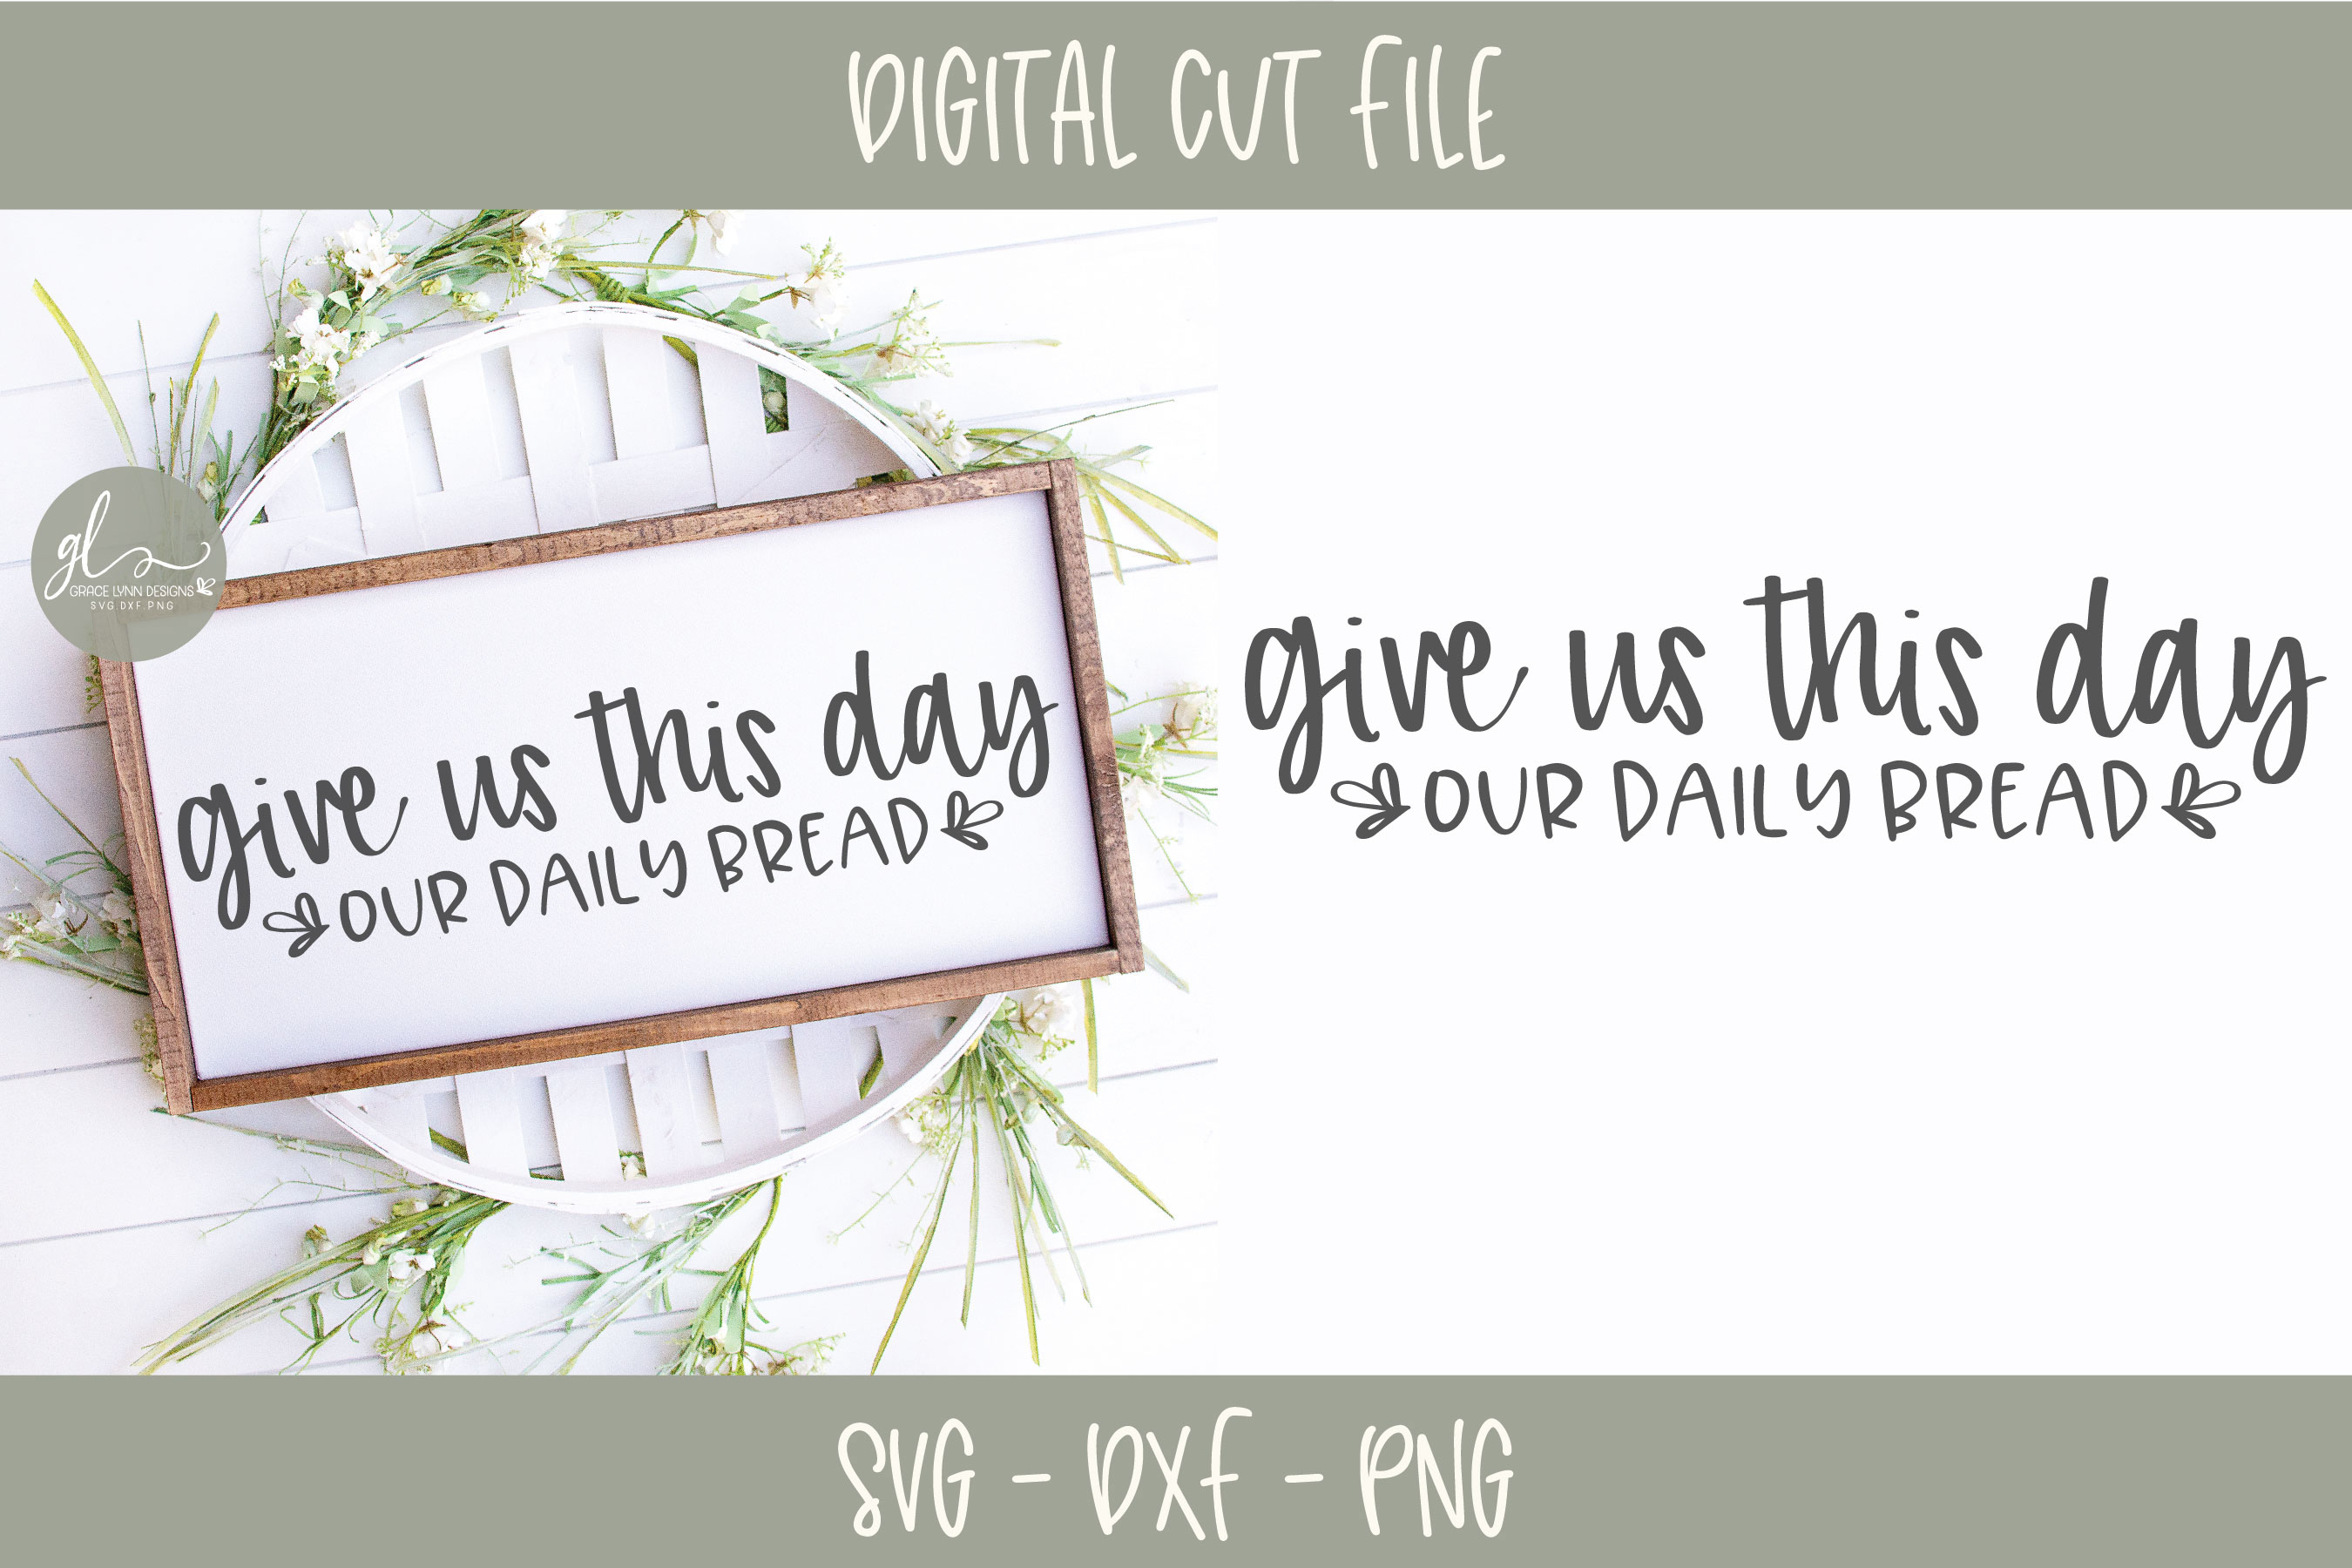 Give Us This Day Our Daily Bread - SVG example image 1